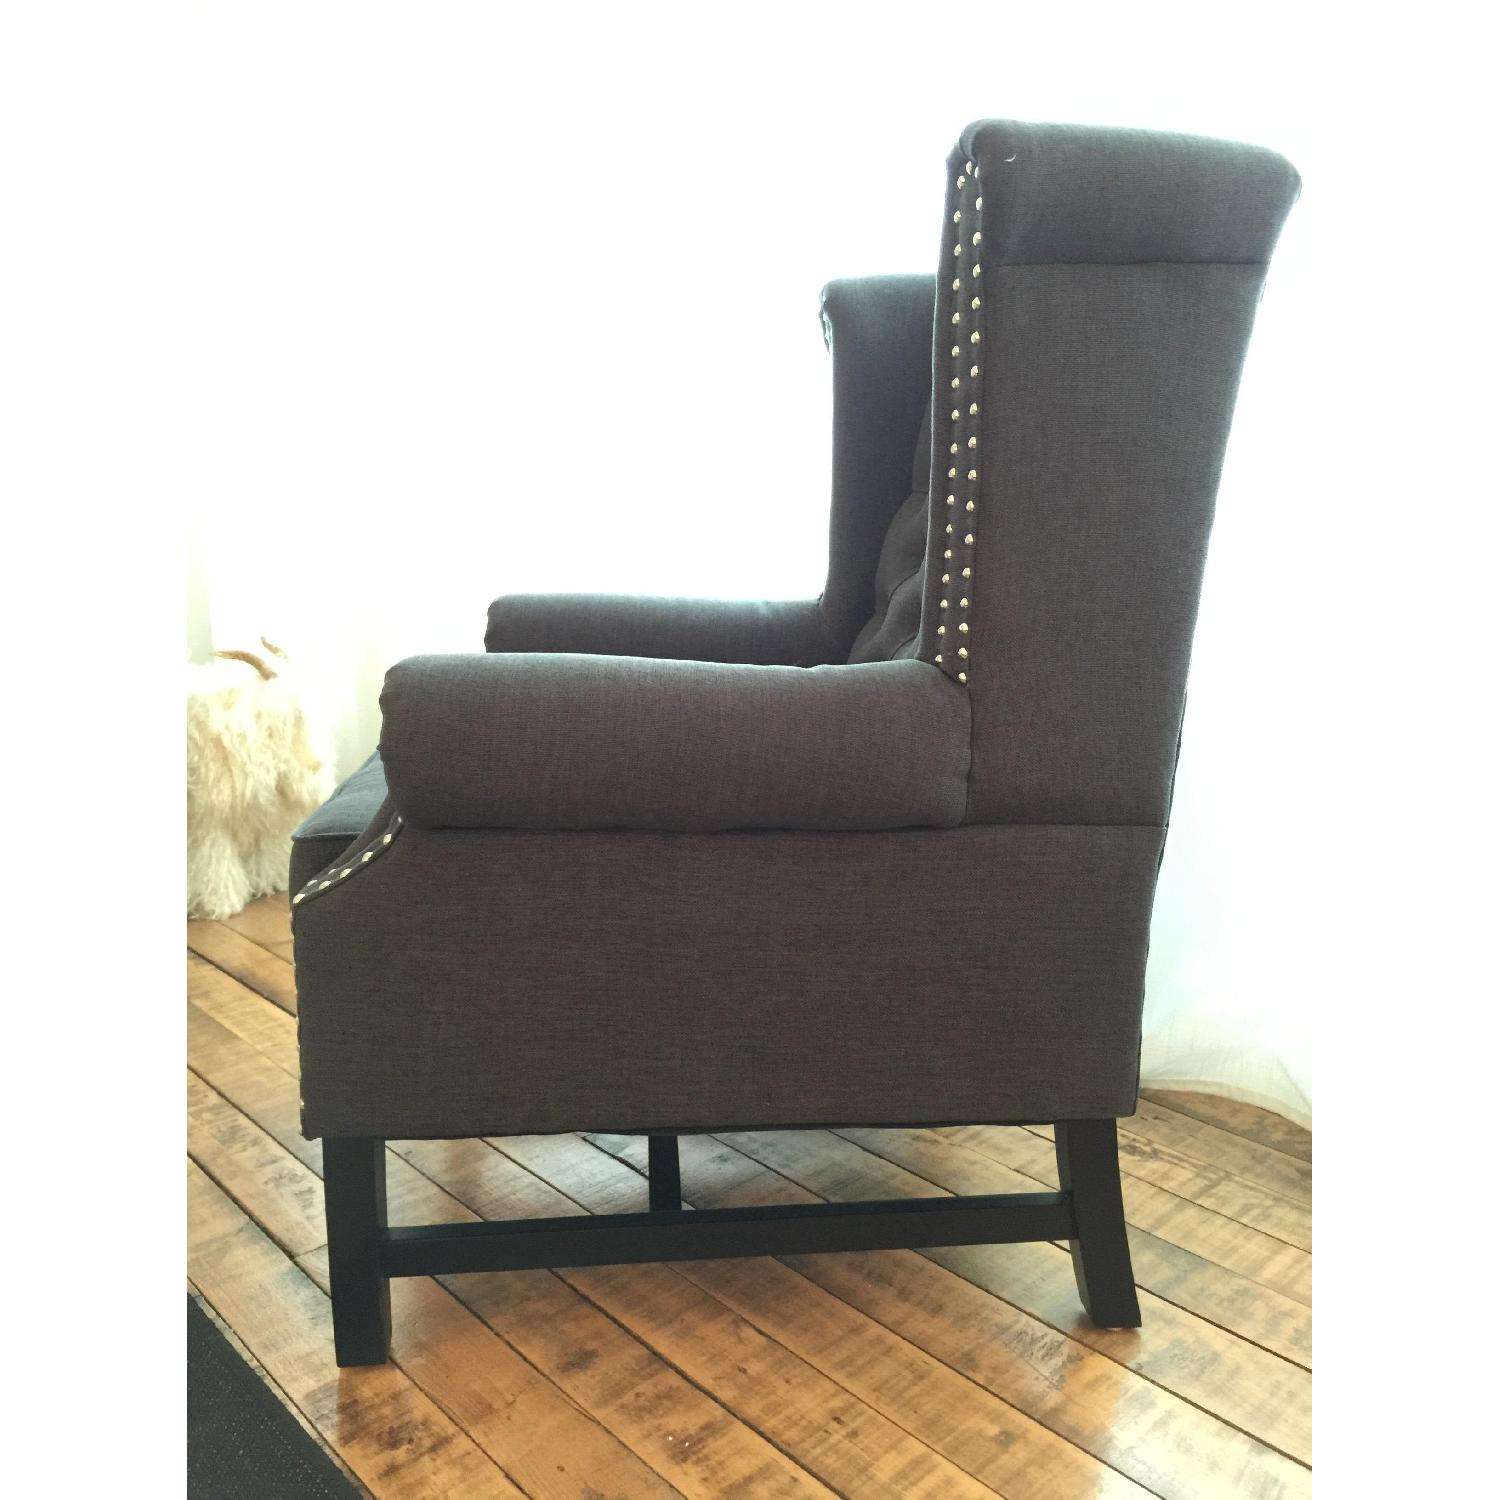 Baxton Studio Grey Linen Armchair w/ Nail Head Trim - image-2